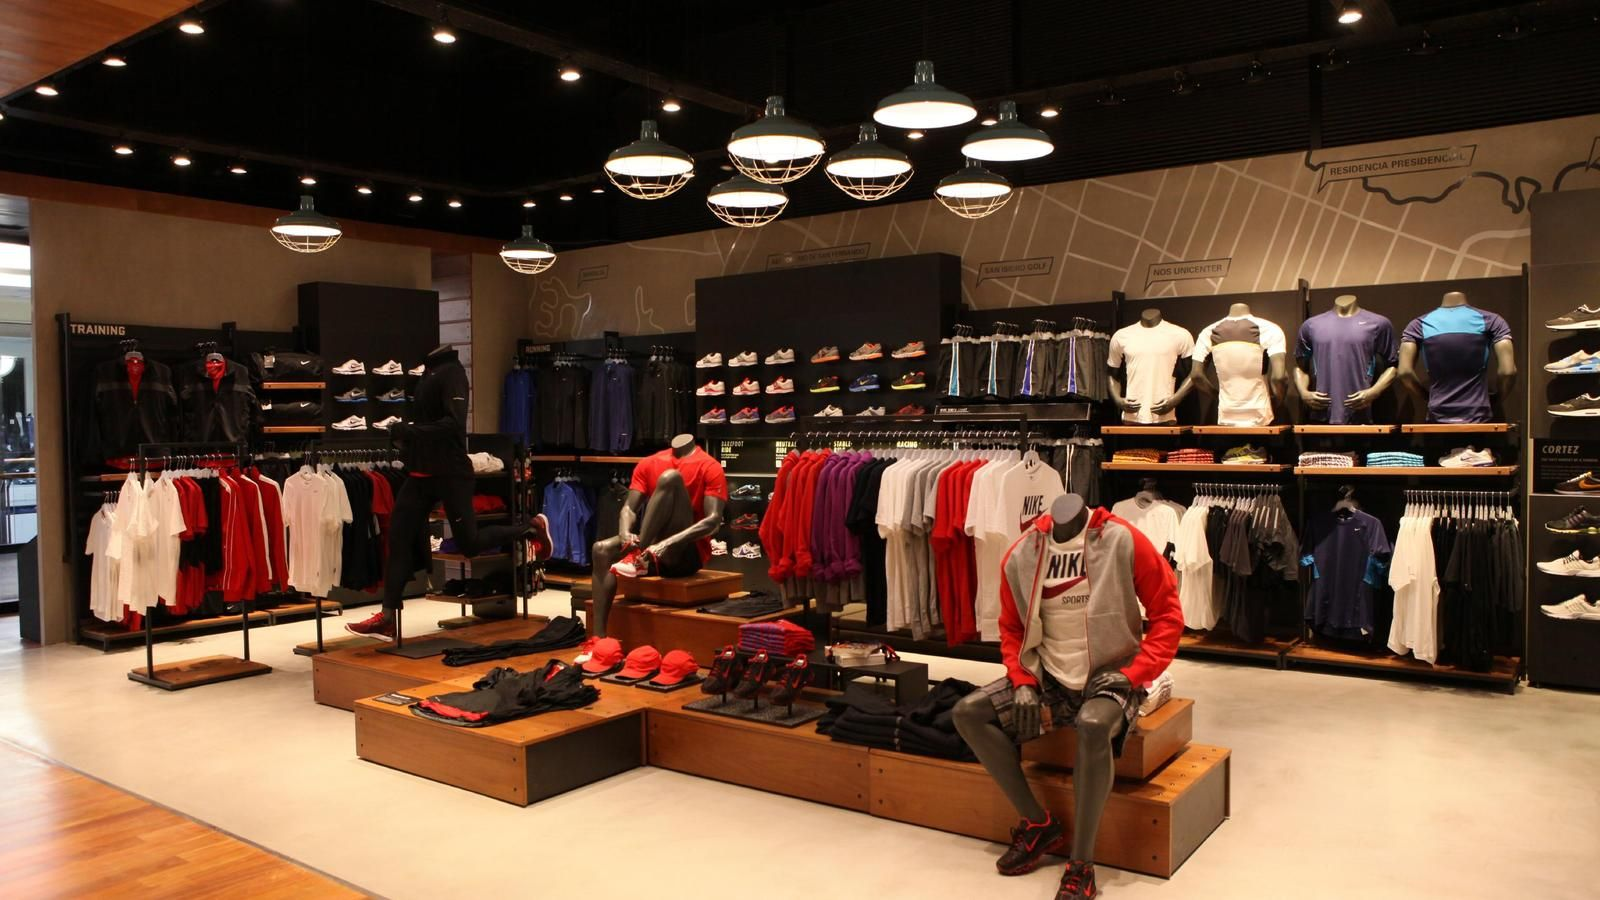 raíz Abreviar uvas  Nike store in Argentina earns gold LEED certification | Retail interior, Nike  store, Cool store